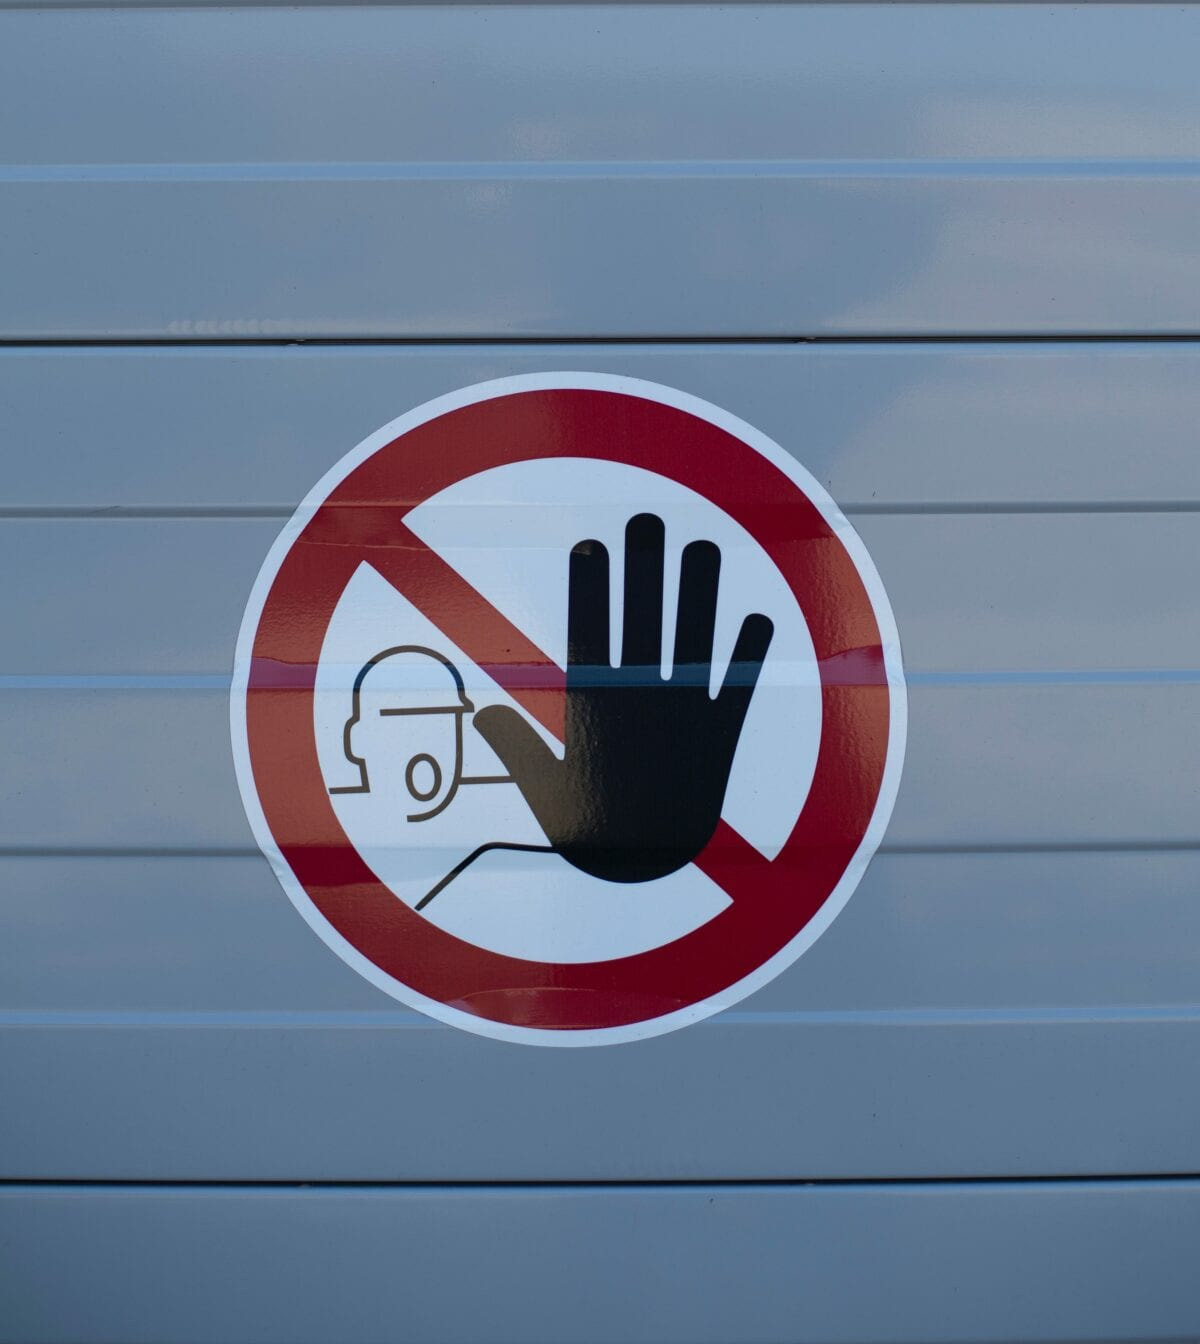 Sign displaying a hand indicating to stop.